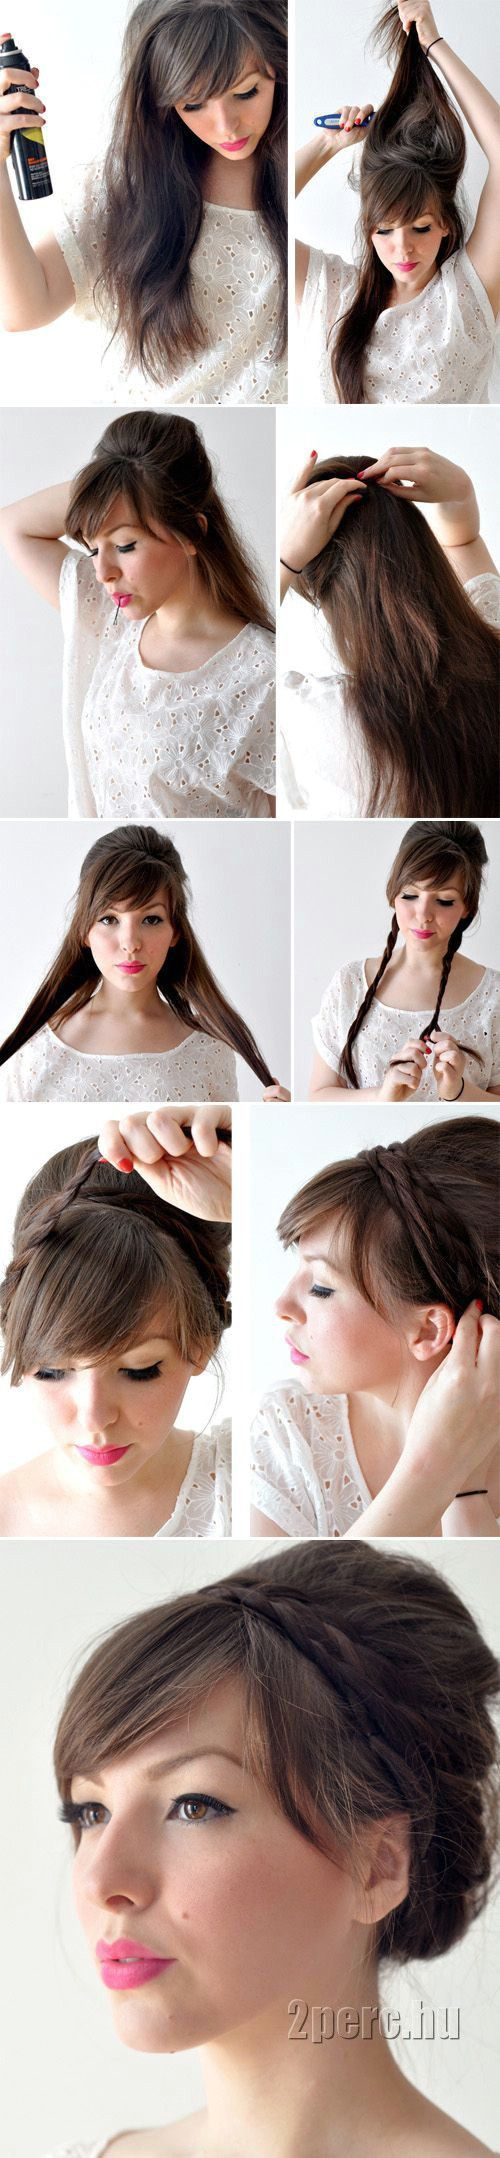 diy hair idea braided updo - @Becky Hui Chan Hui Chan Hui Chan Hui Chan Hui Chan Hui Chan Gilbert i like this for me for ya wedding! what do you think? {i may not even be able to do it cause my hair is short}